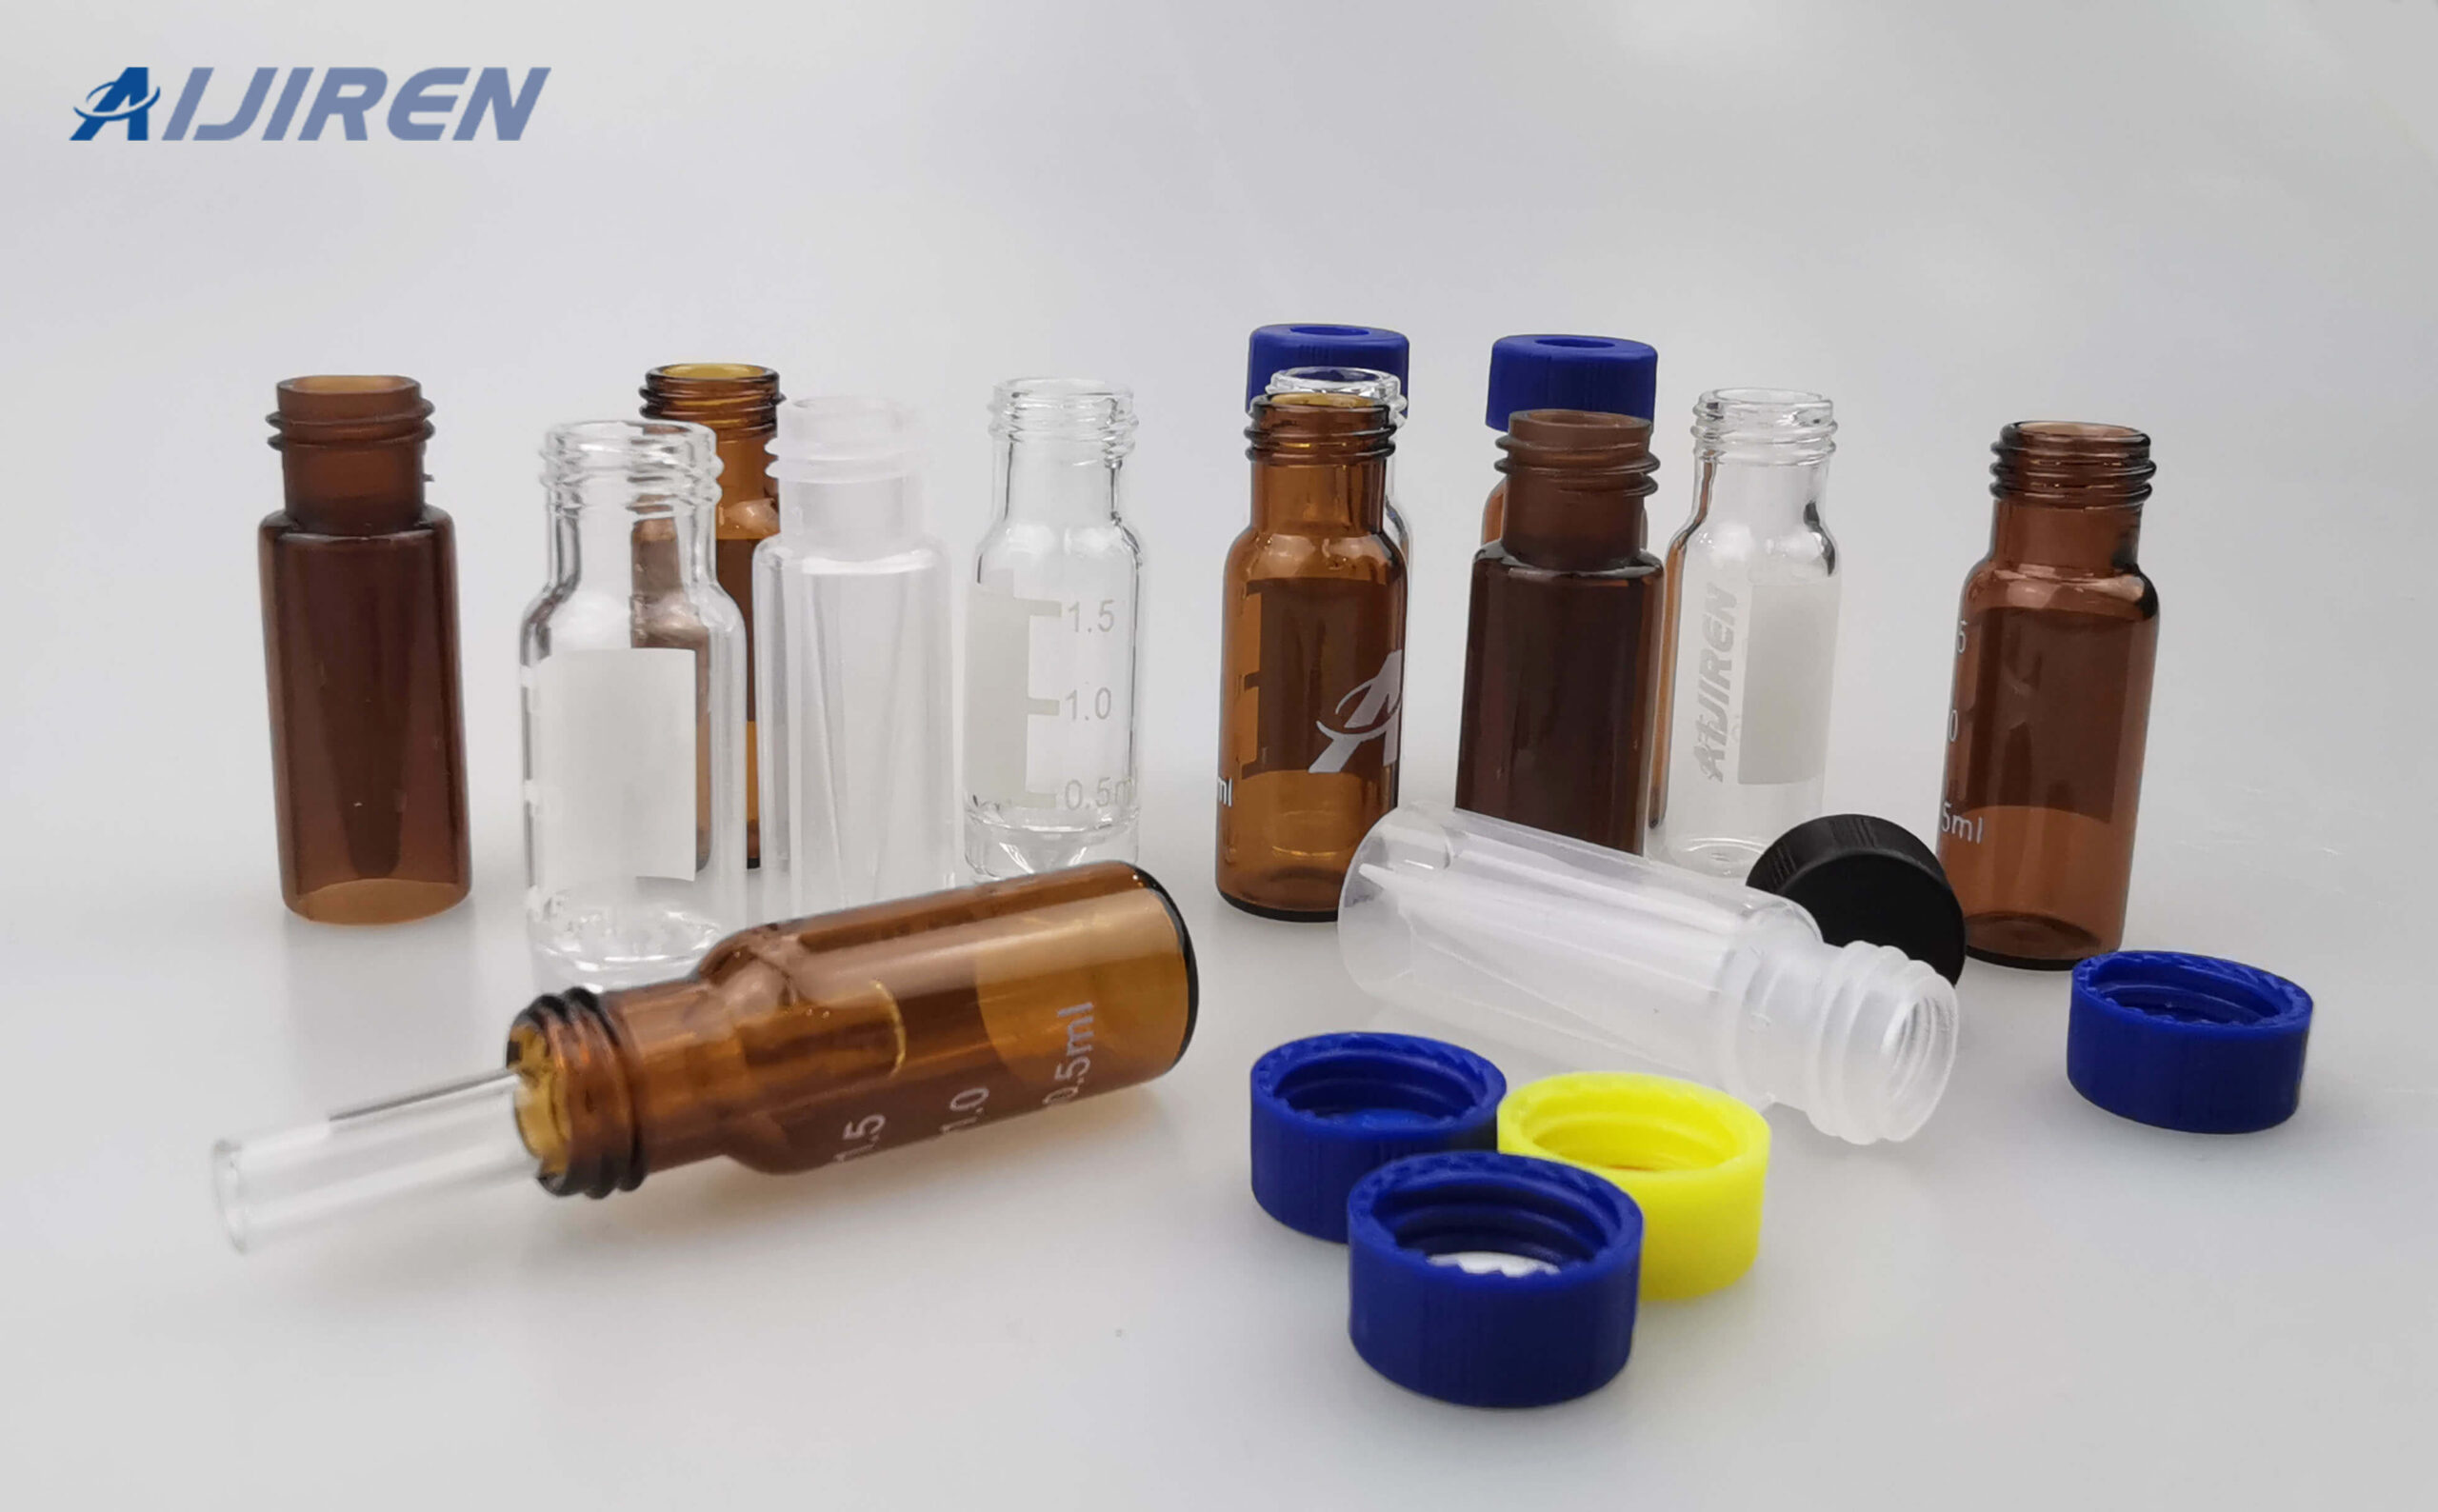 20ml headspace vial2ml Screw Top Glass Vial with Micro-Insert for Sale